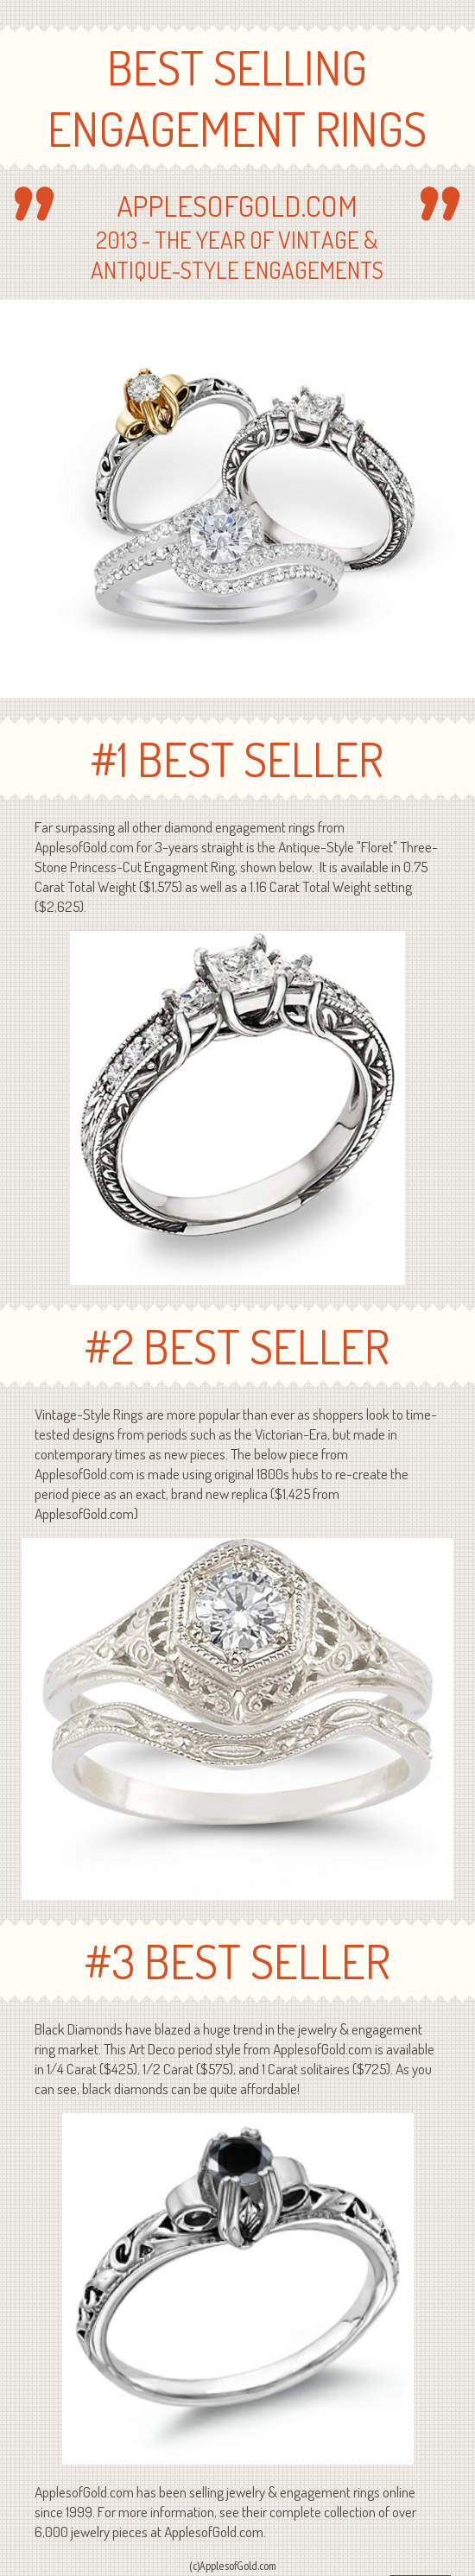 best selling engagement rings of 2013 infographic